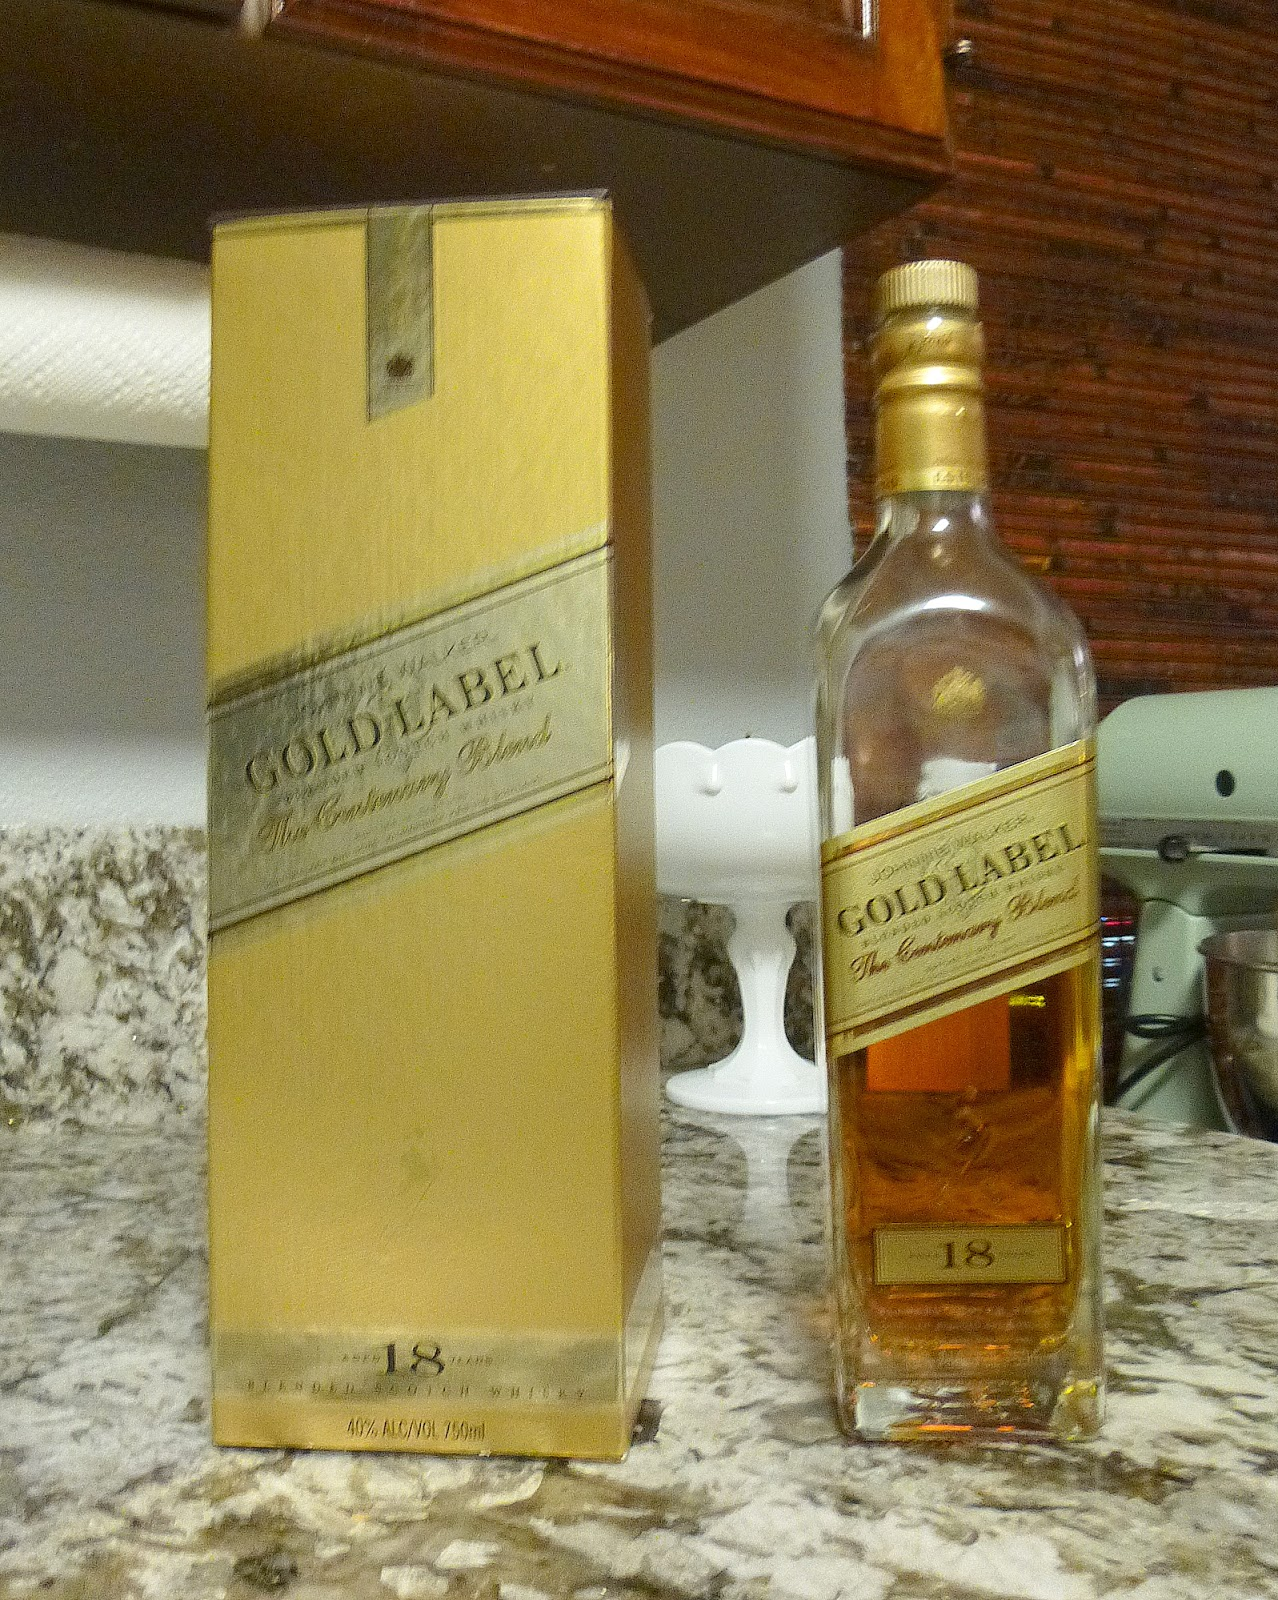 This is a picture of Current Mekong Whisky Gold Label